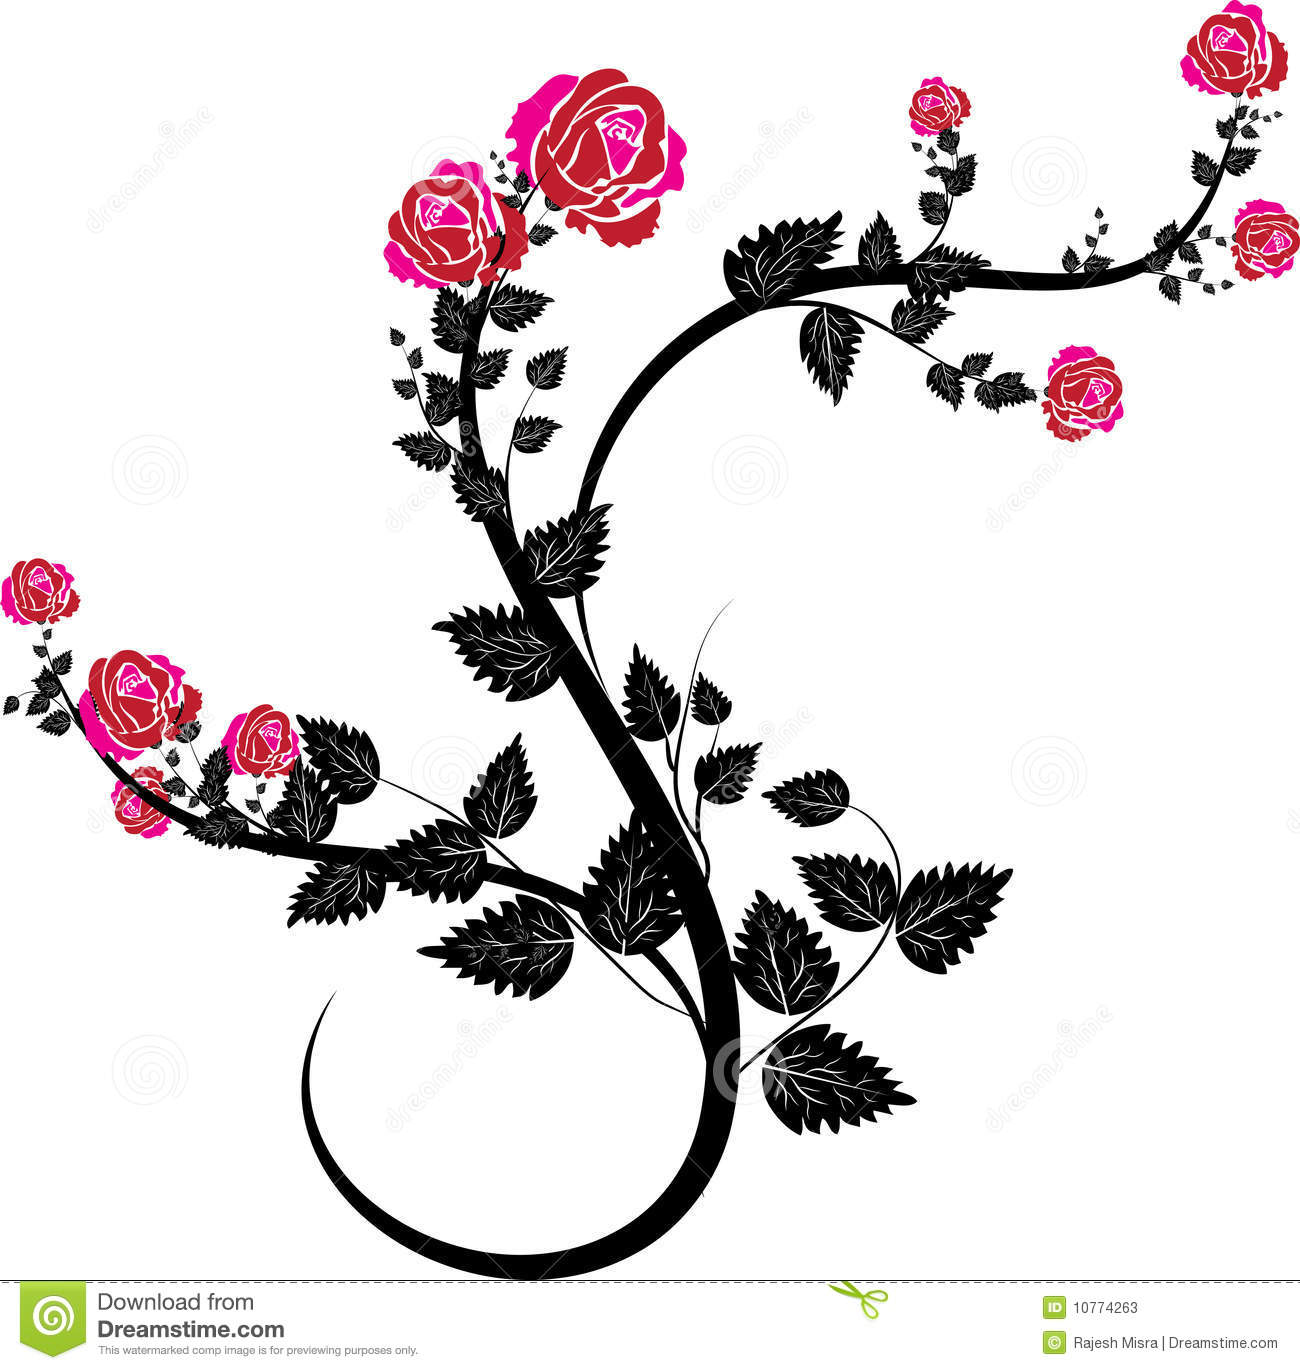 Rose vines9 stock vector. Illustration of floral, classic